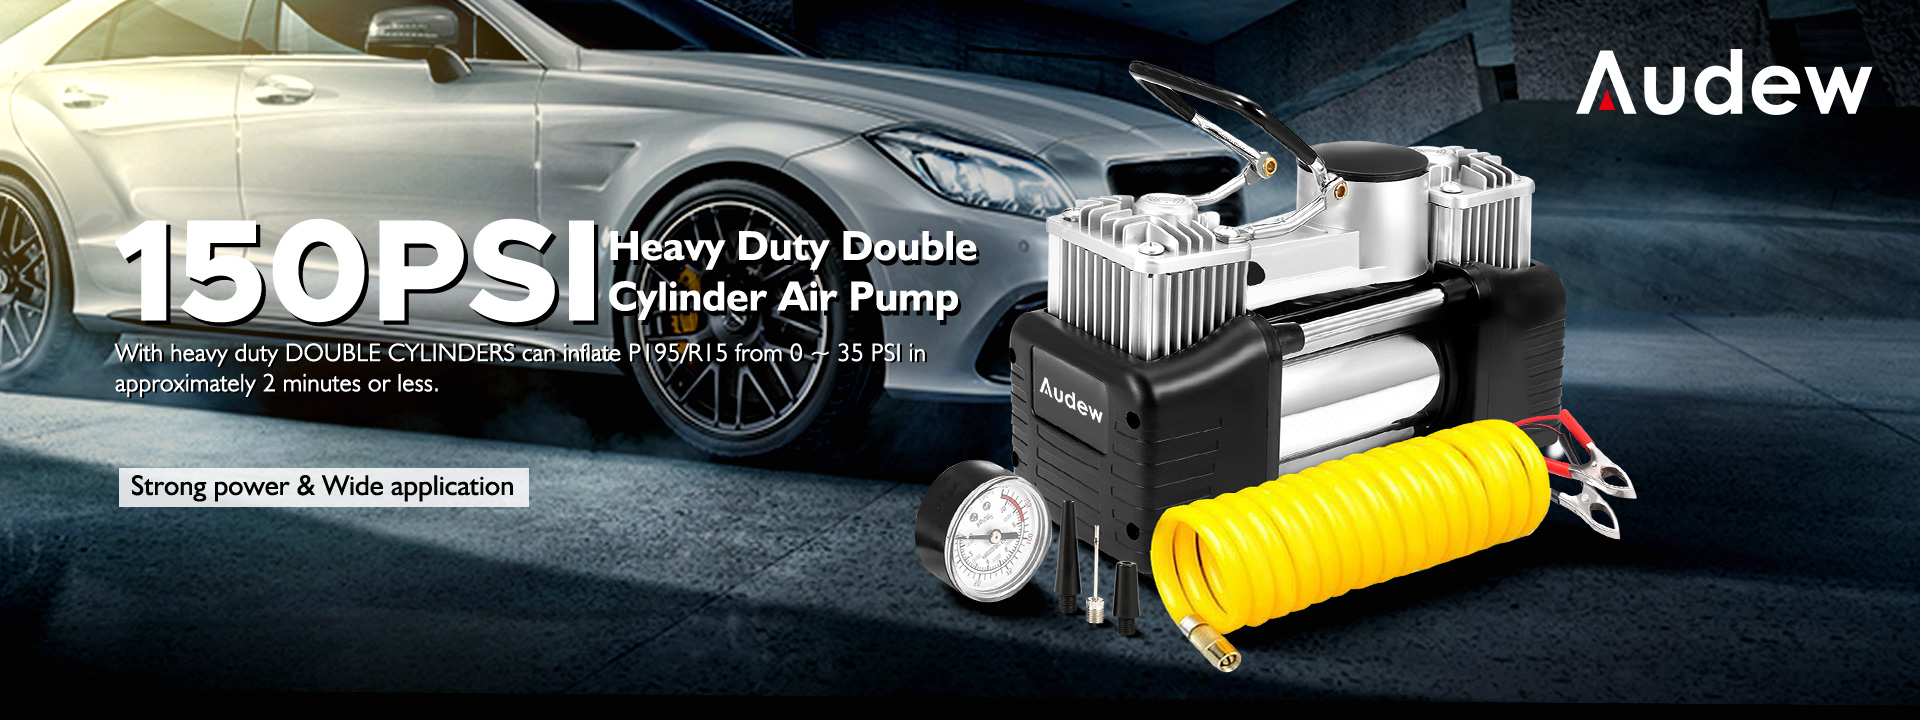 AUDEW 150PSI Heavy Duty Double Cylinder Air Pump